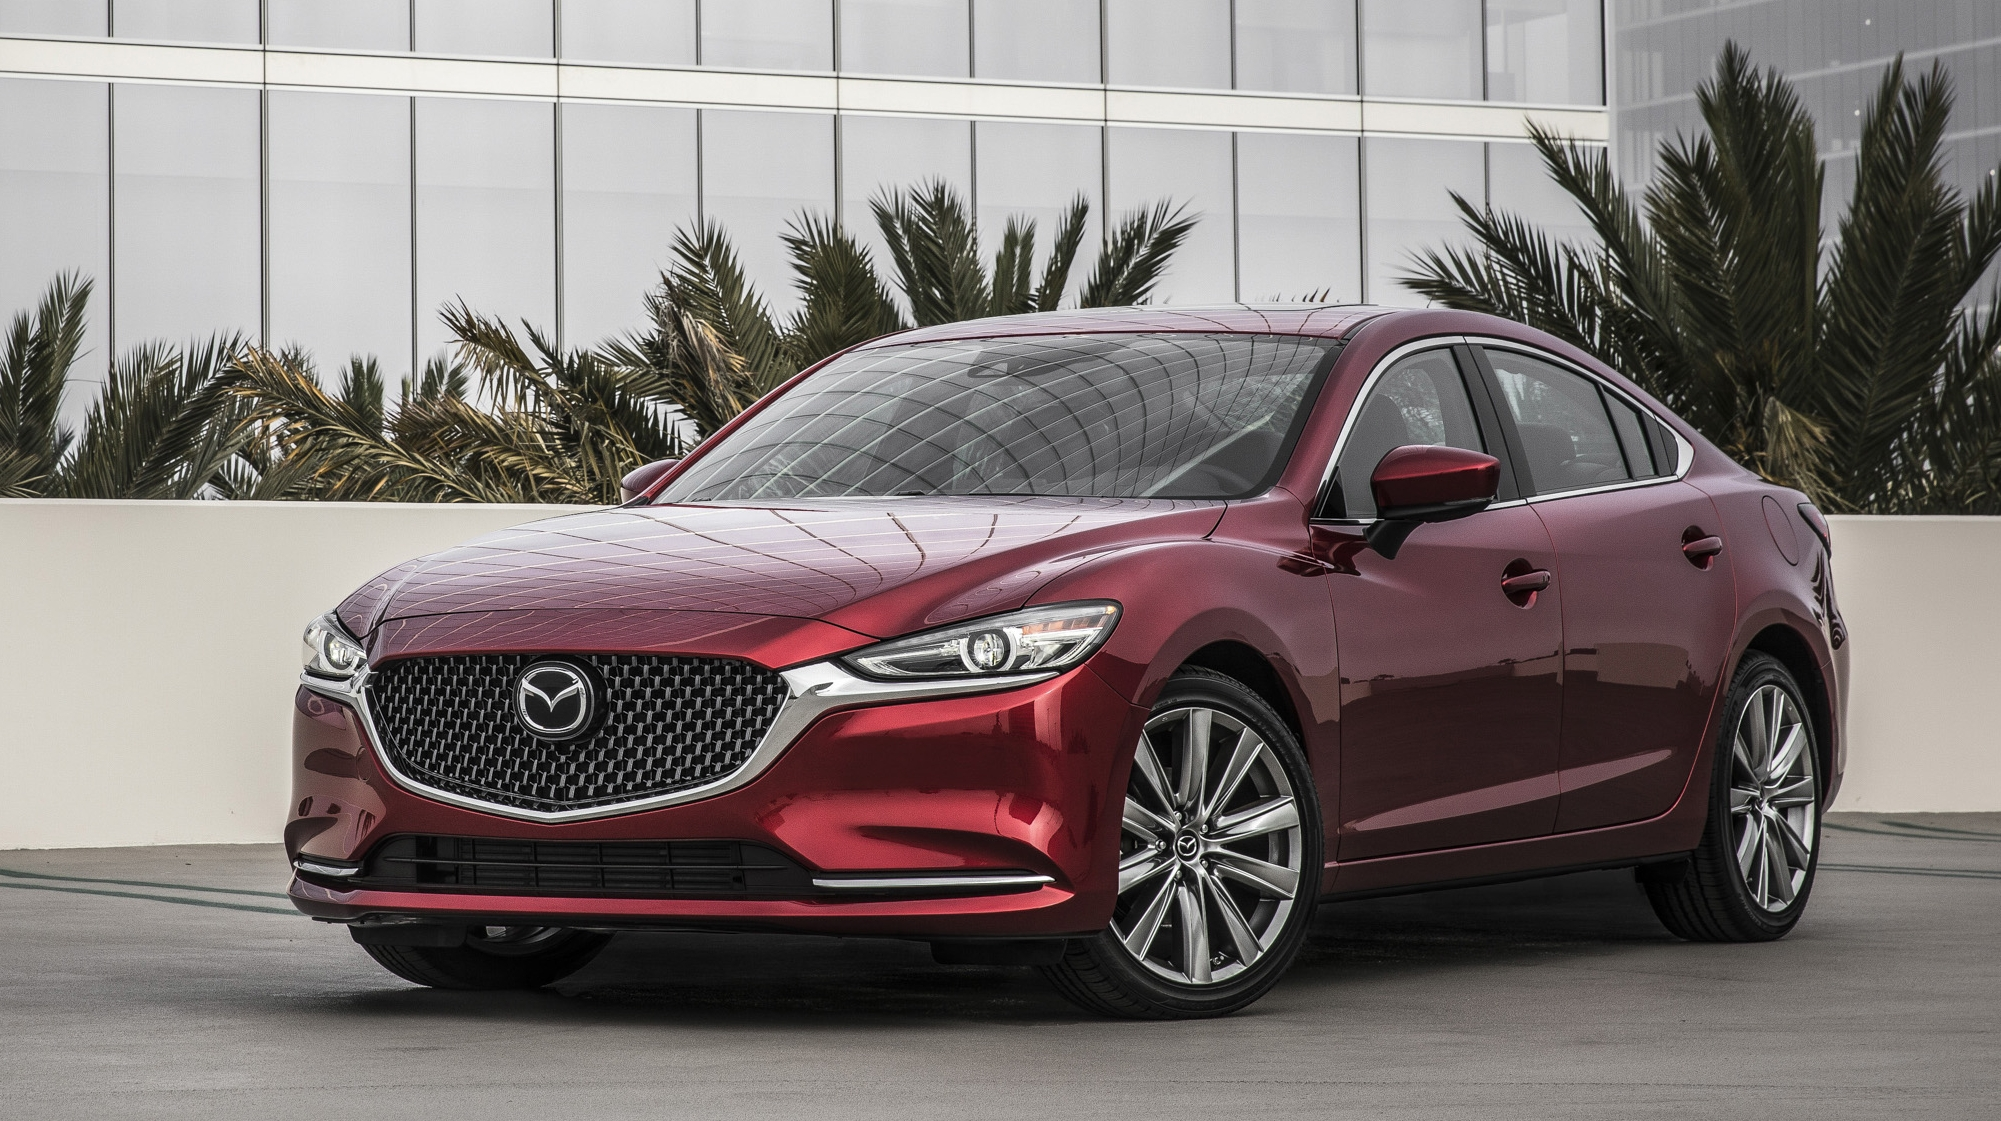 2018 mazda6 prices announced news top speed. Black Bedroom Furniture Sets. Home Design Ideas